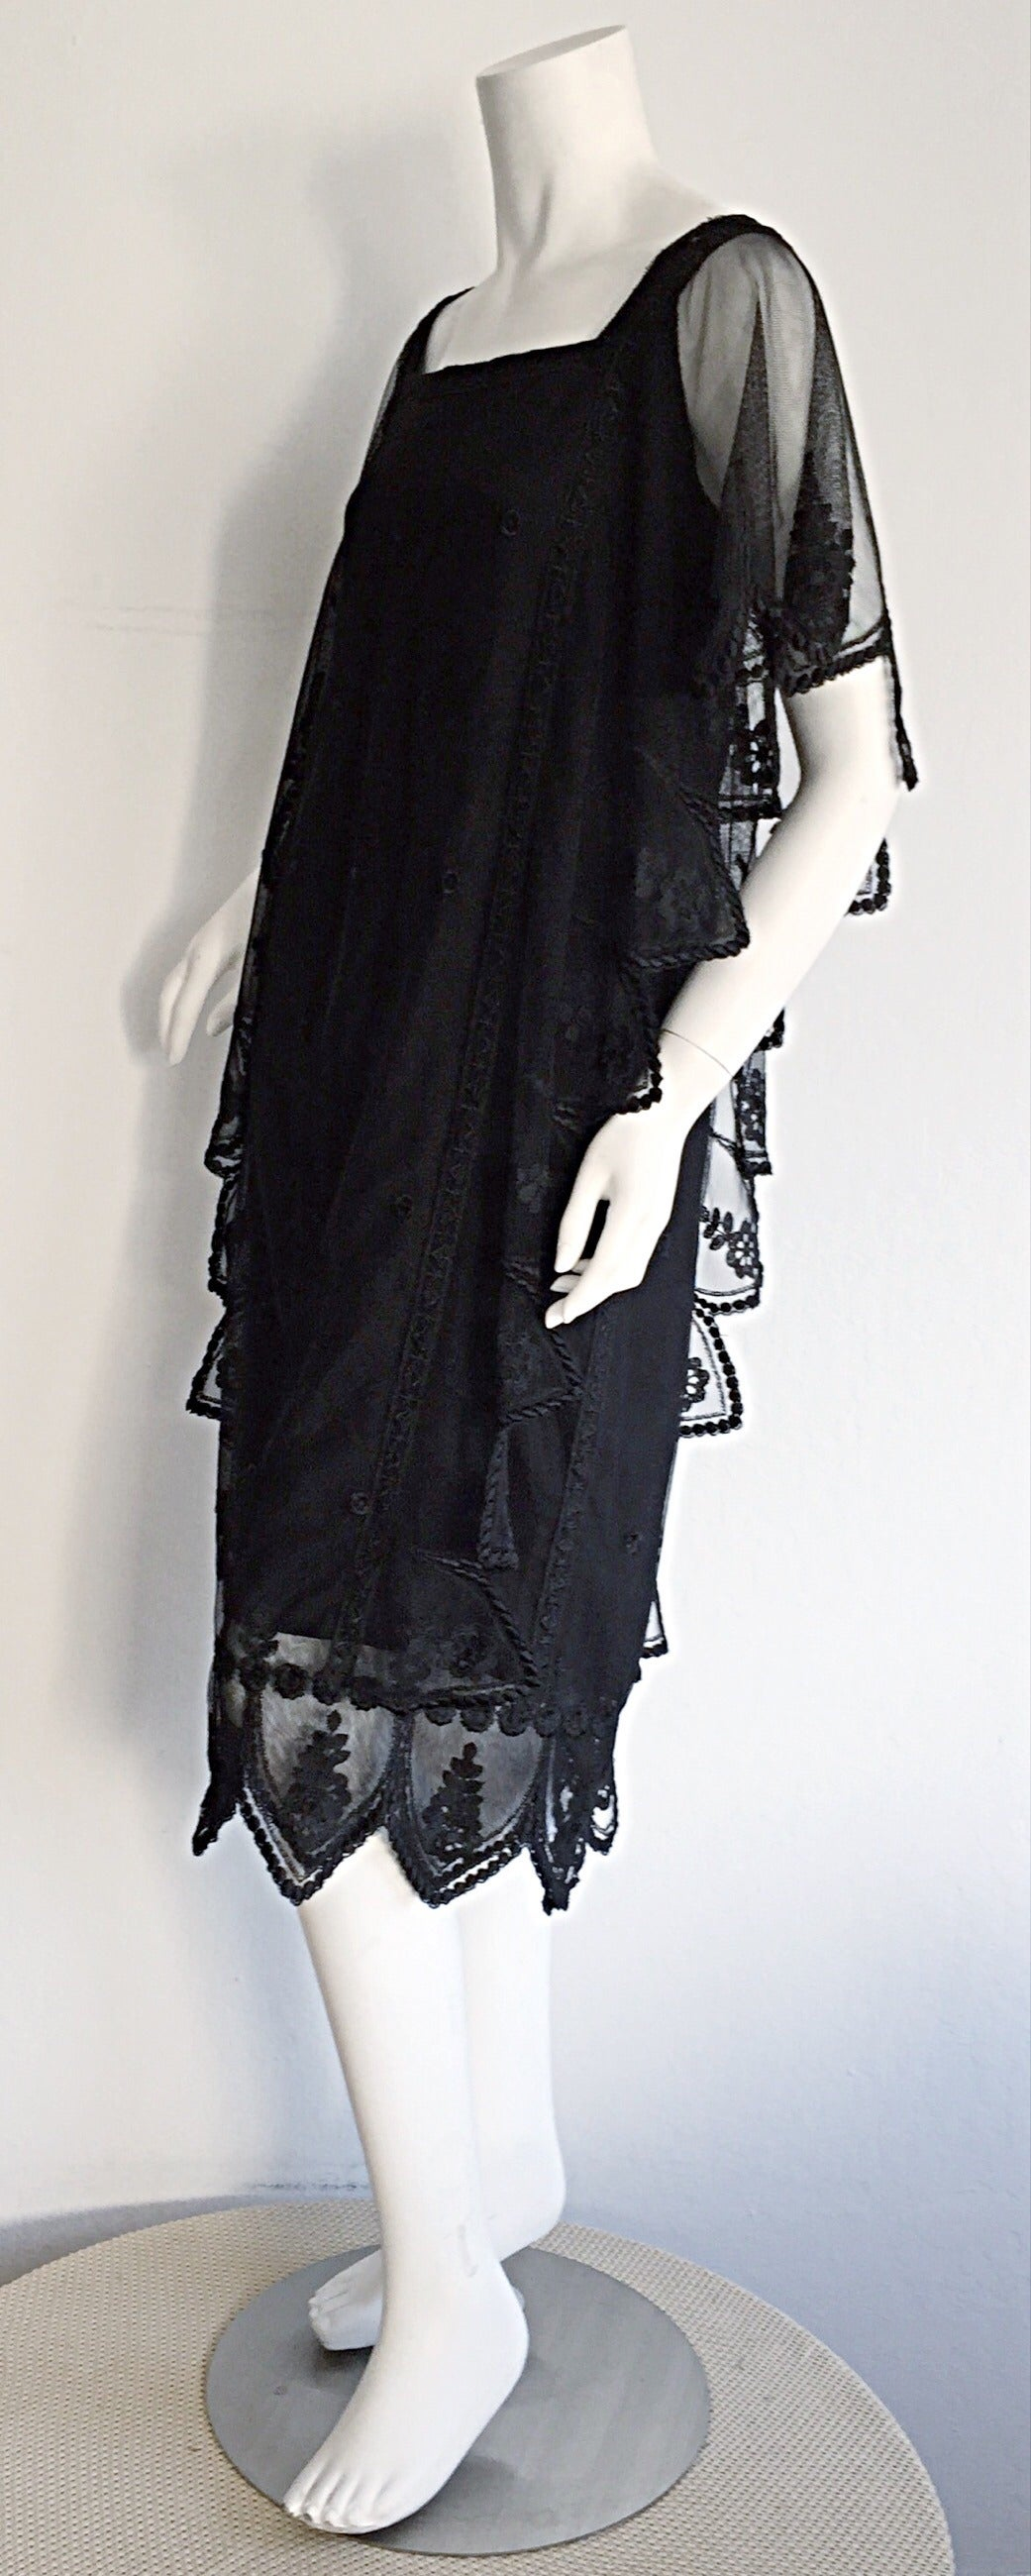 Vintage Giorgio Sant 'Angelo Black Lace ' Flapper ' Style Gatsby Dress 3